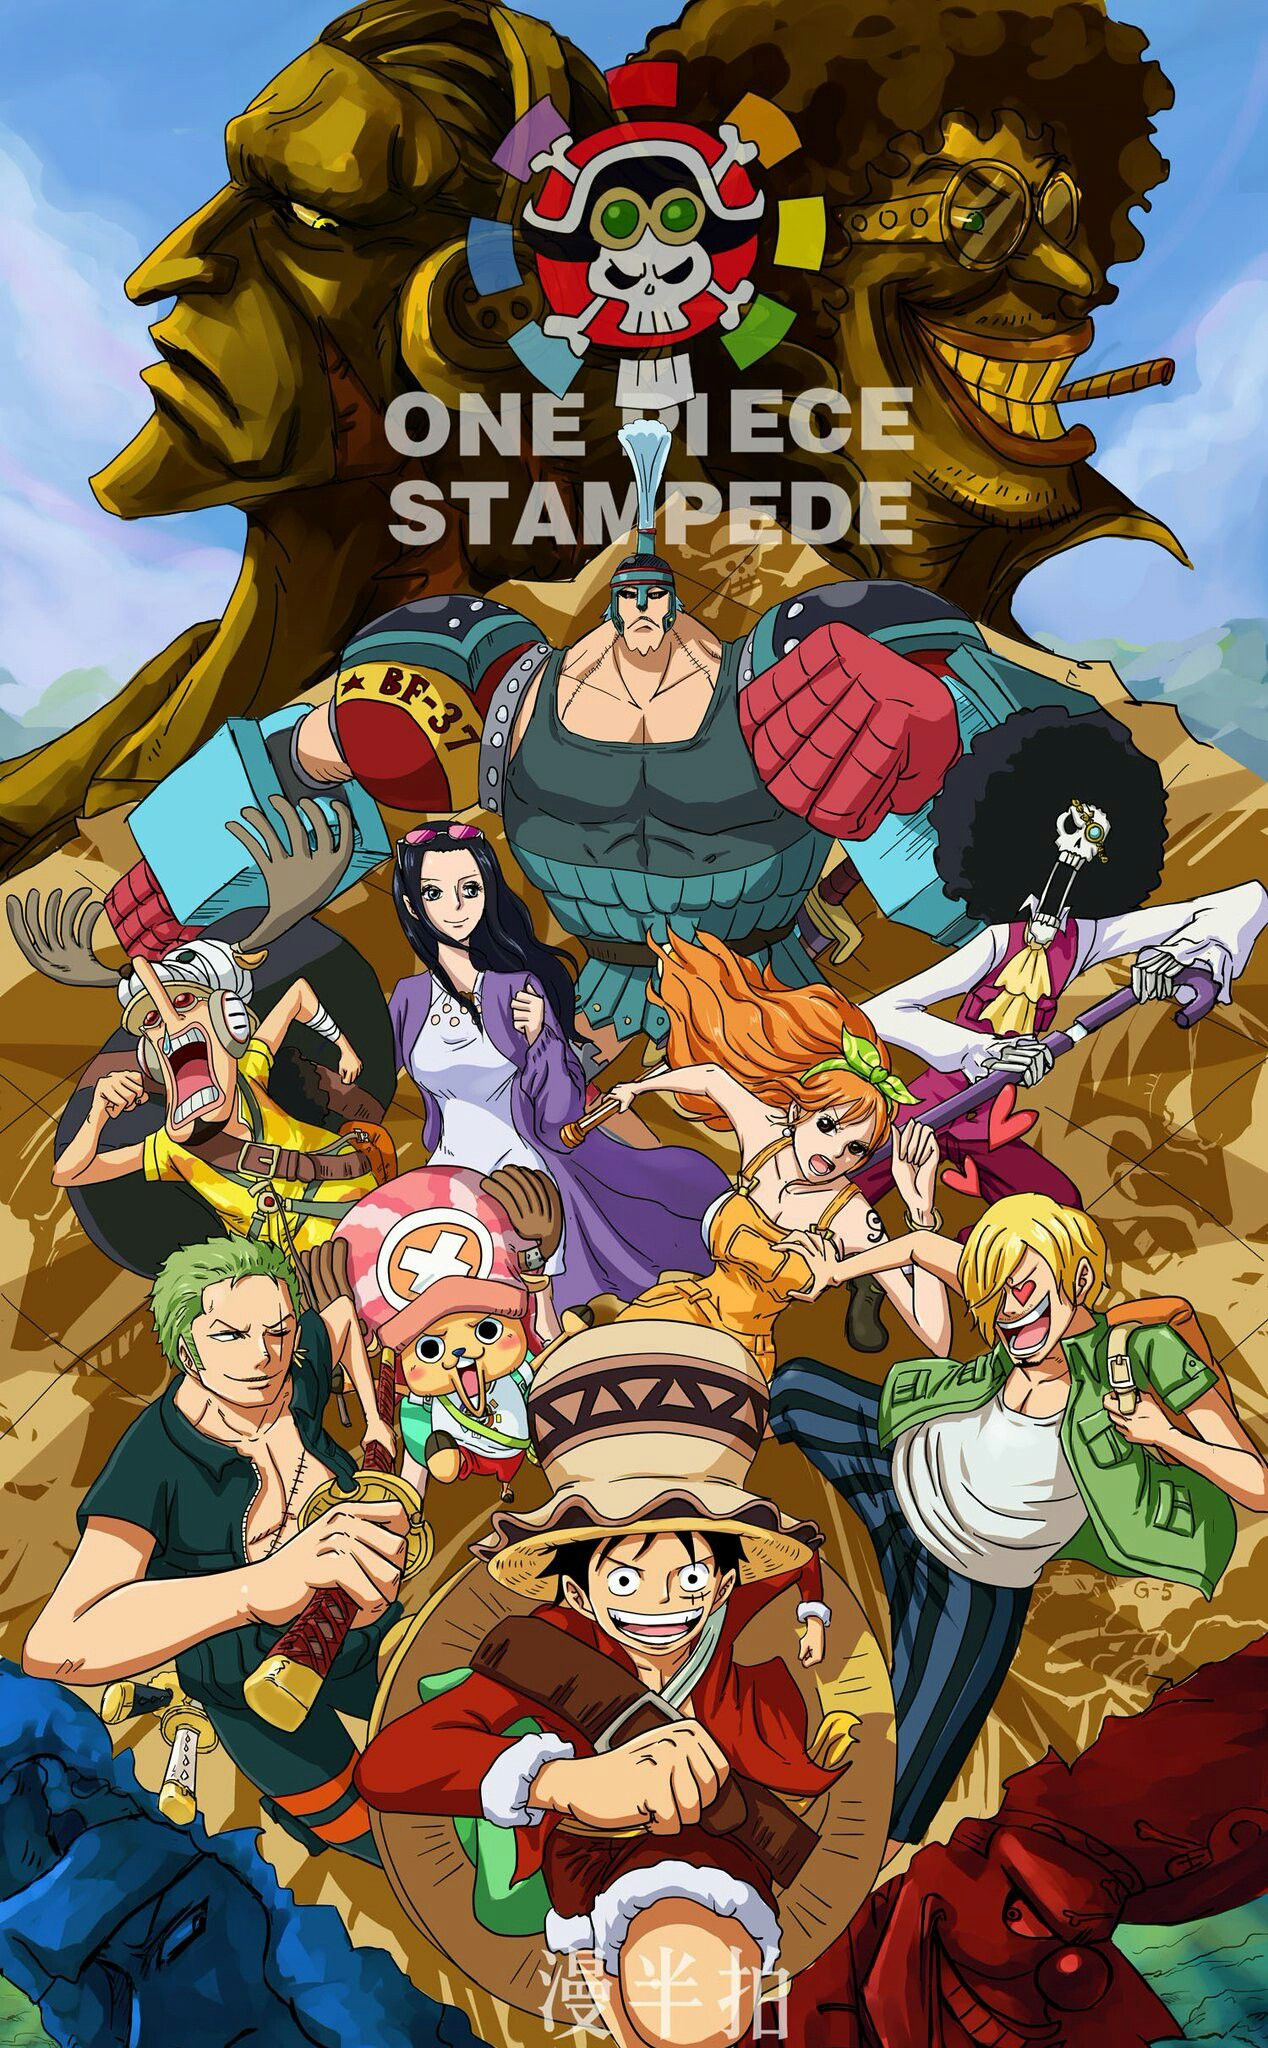 Pin by the dark on One piece Anime, One piece drawing